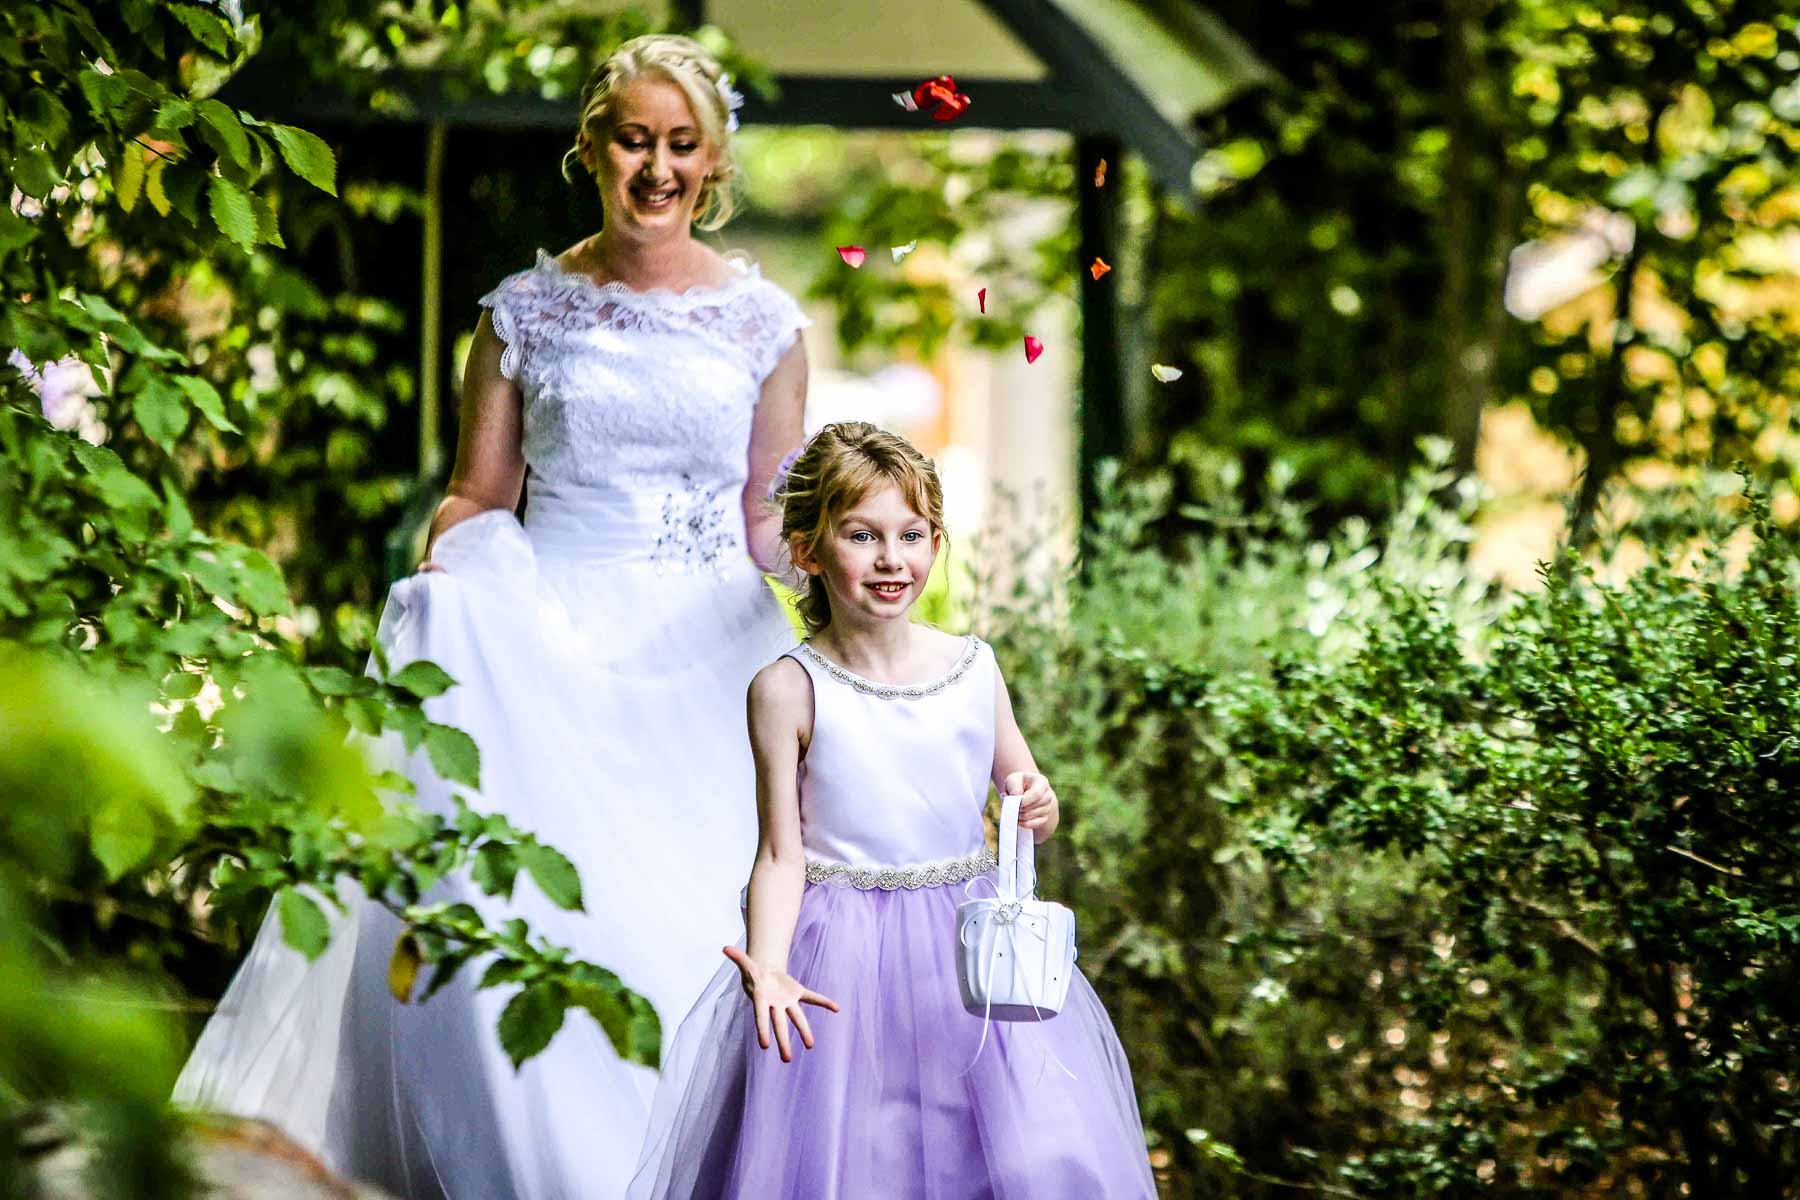 Bride and Flower Girl - Karen Brothers Photography Daylesford & Hepburn